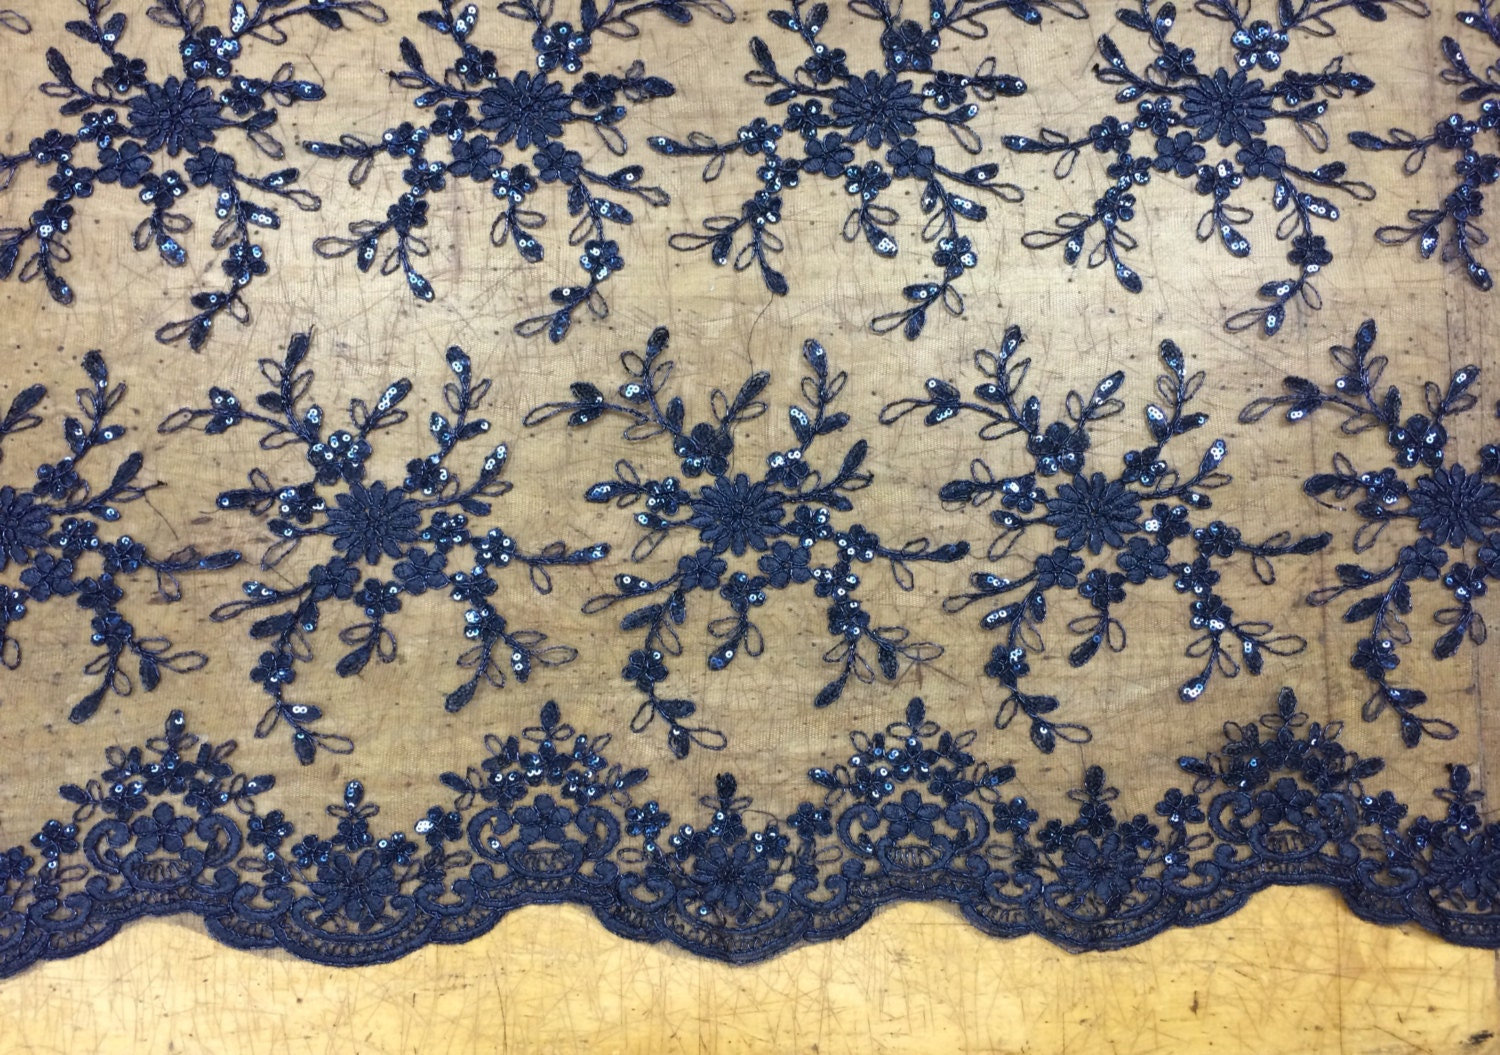 Navy sequin lace lace fabric scalloped fabric for wedding for Sequin fabric